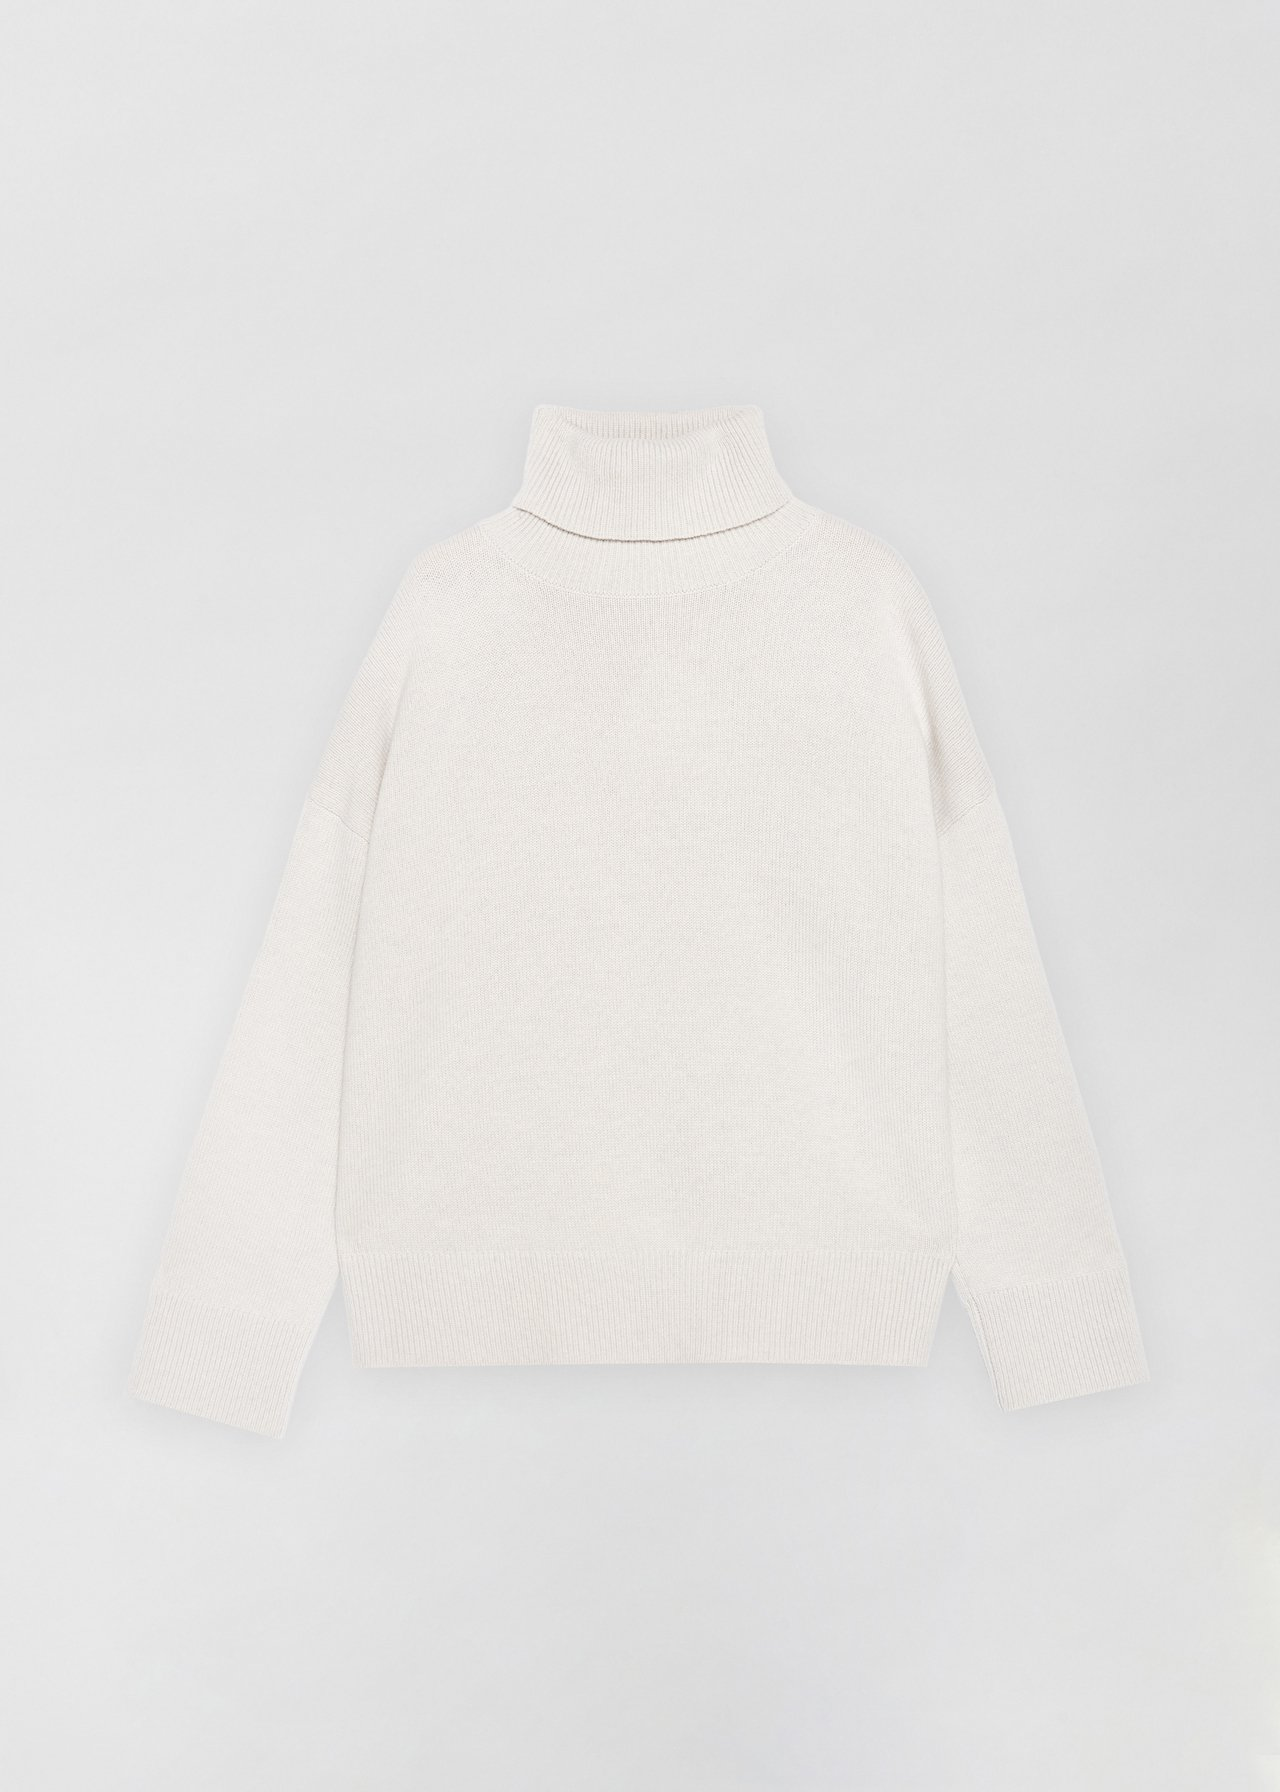 Boxy Turtleneck Sweater - Grey in Dove Grey by Co Collections